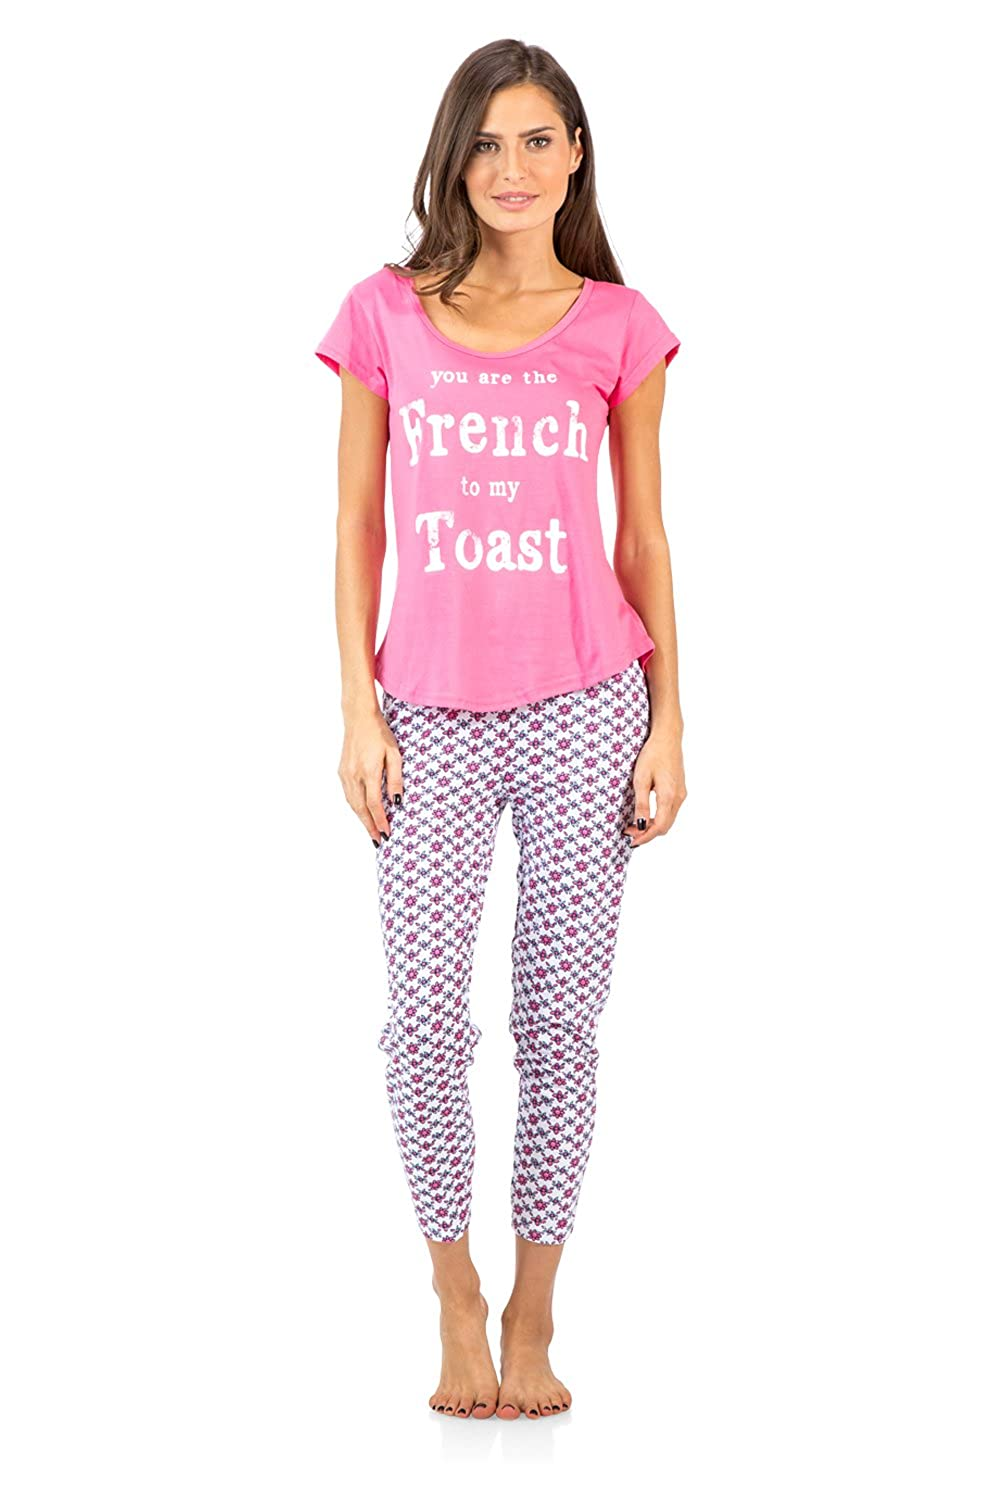 Casual Nights Women's Short Sleeve Printed Capri Pajama Set Printed Capri Pj' s